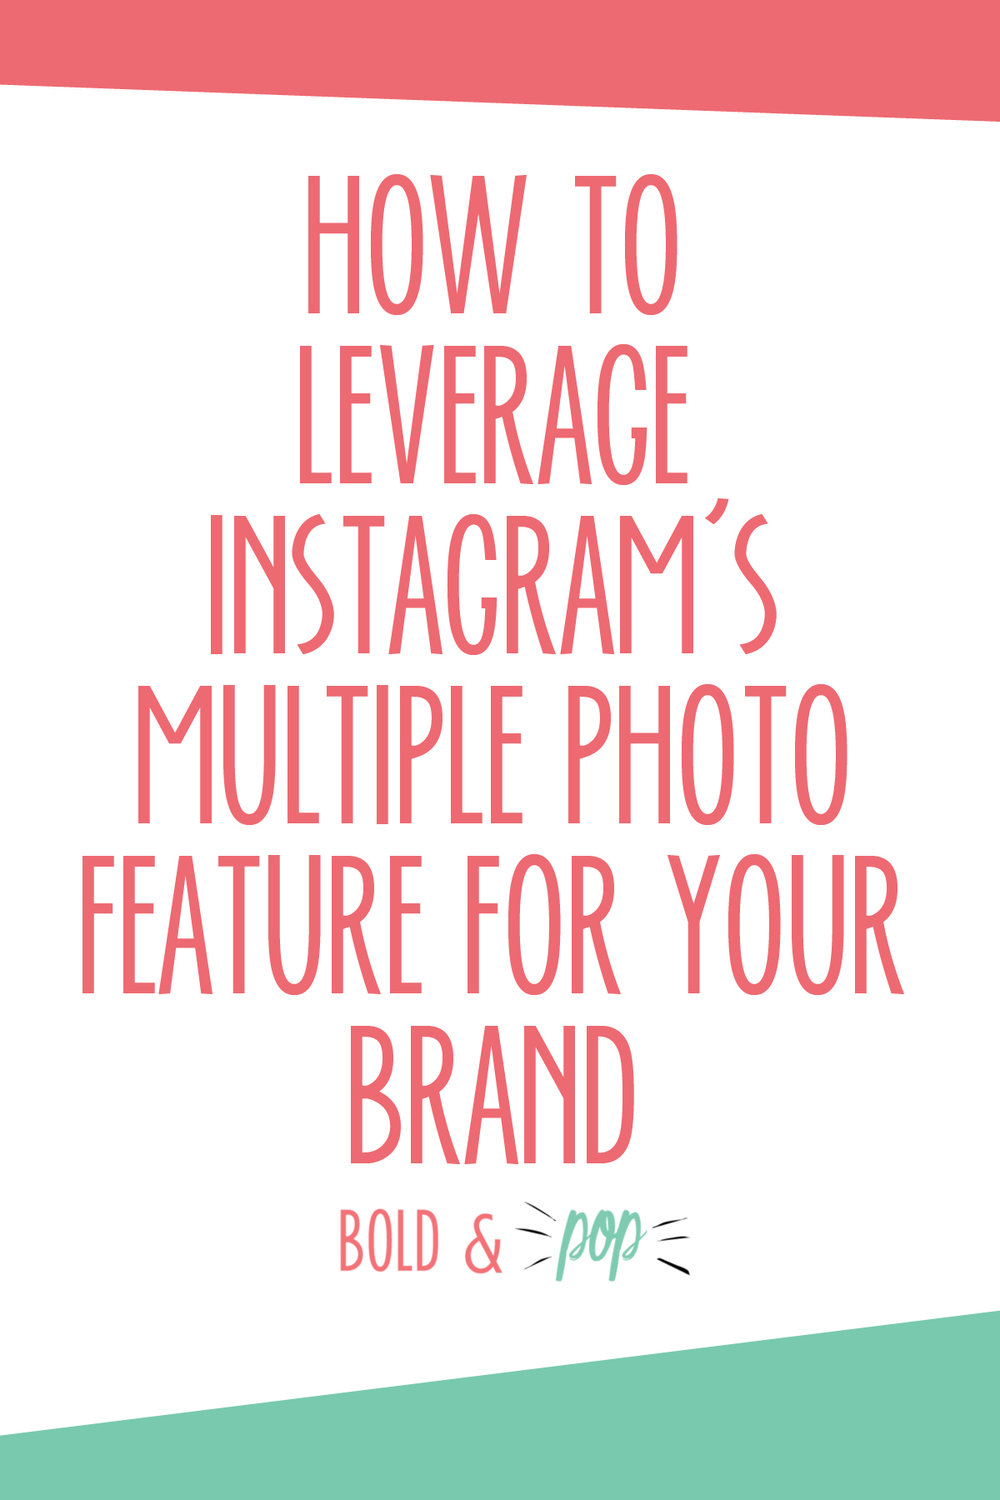 Bold & Pop : How to Leverage Instagram's Multiple Photo Feature for your Brand